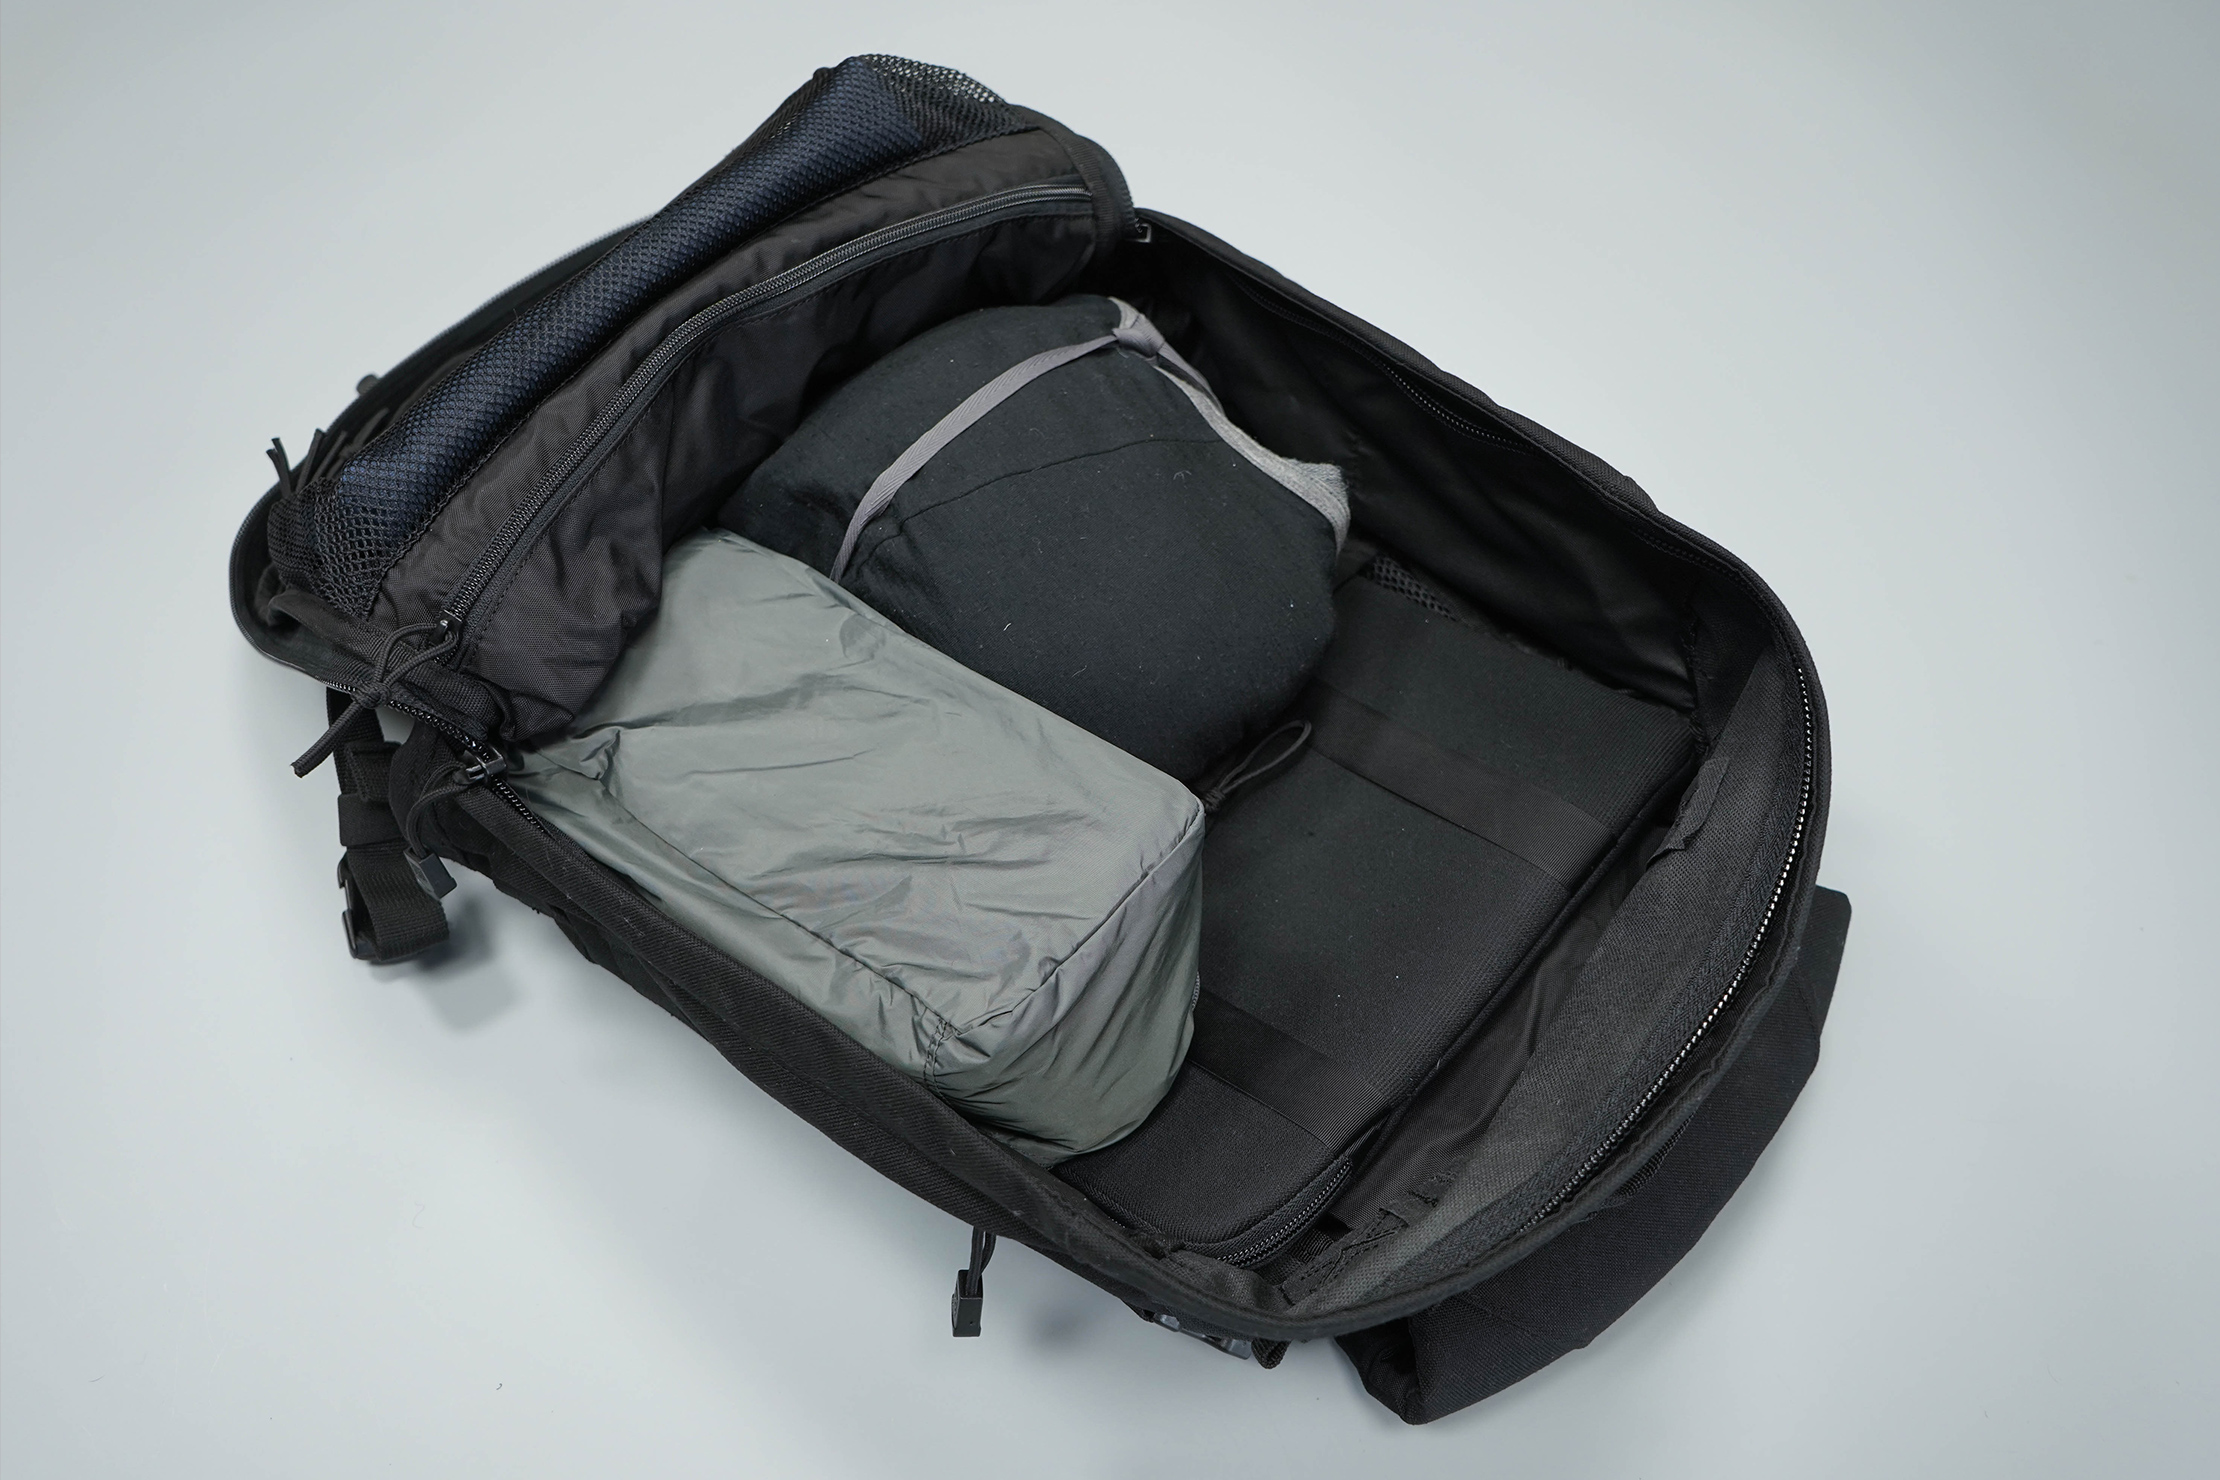 5.11 Tactical Rush24 Backpack Main Compartment Packed